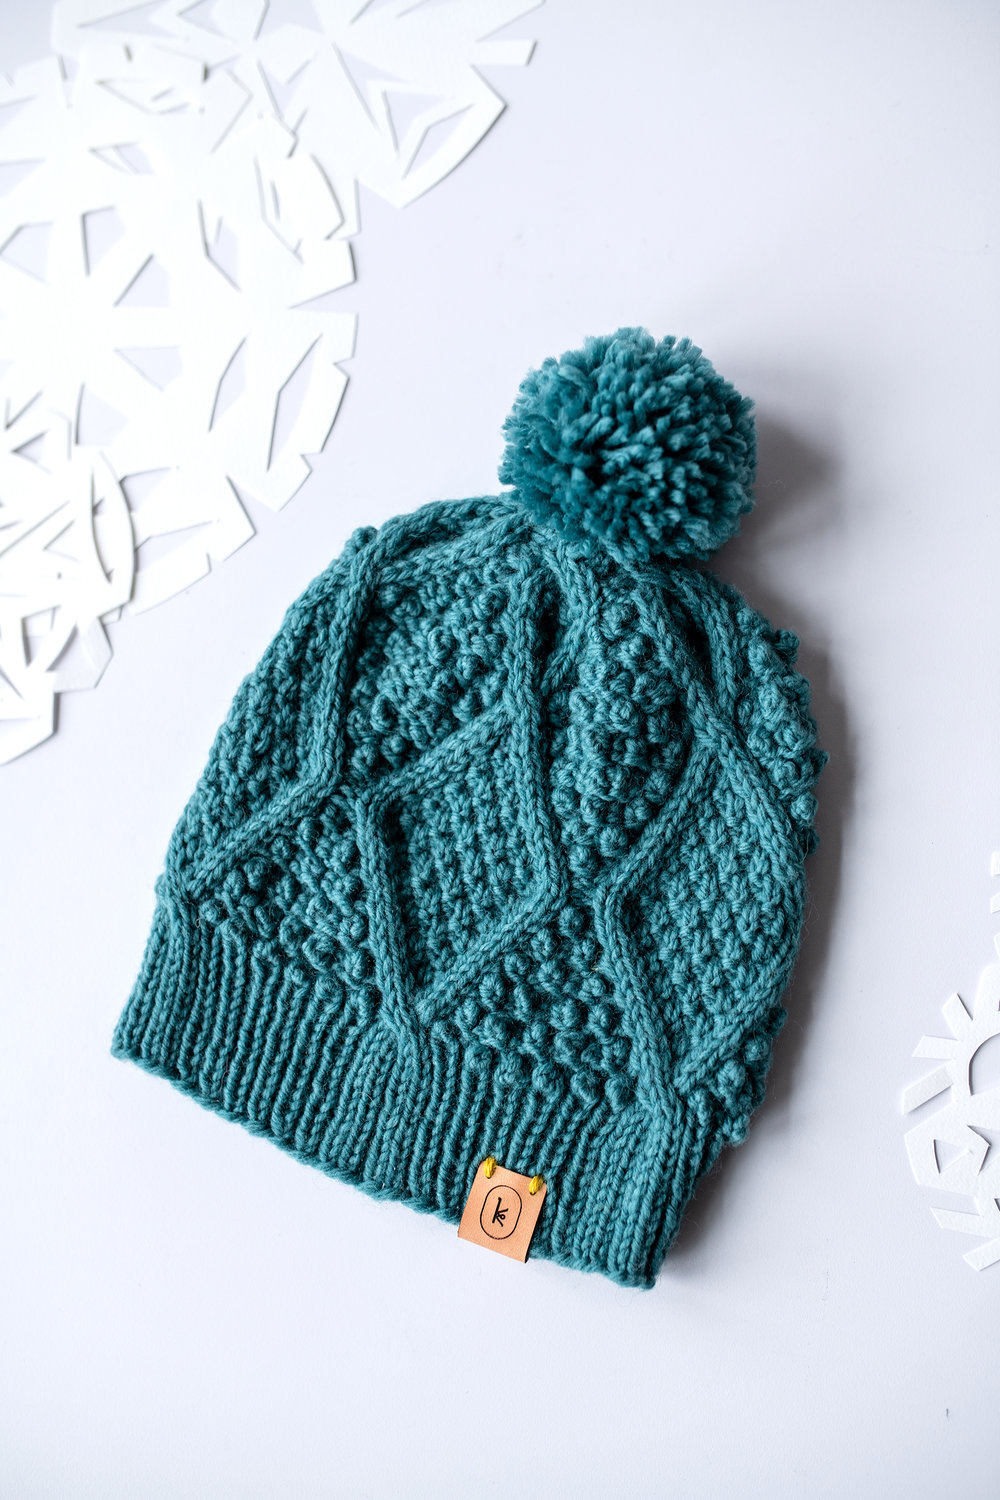 January Hat by Courtney Kelley. Image © Linette Kielinski.